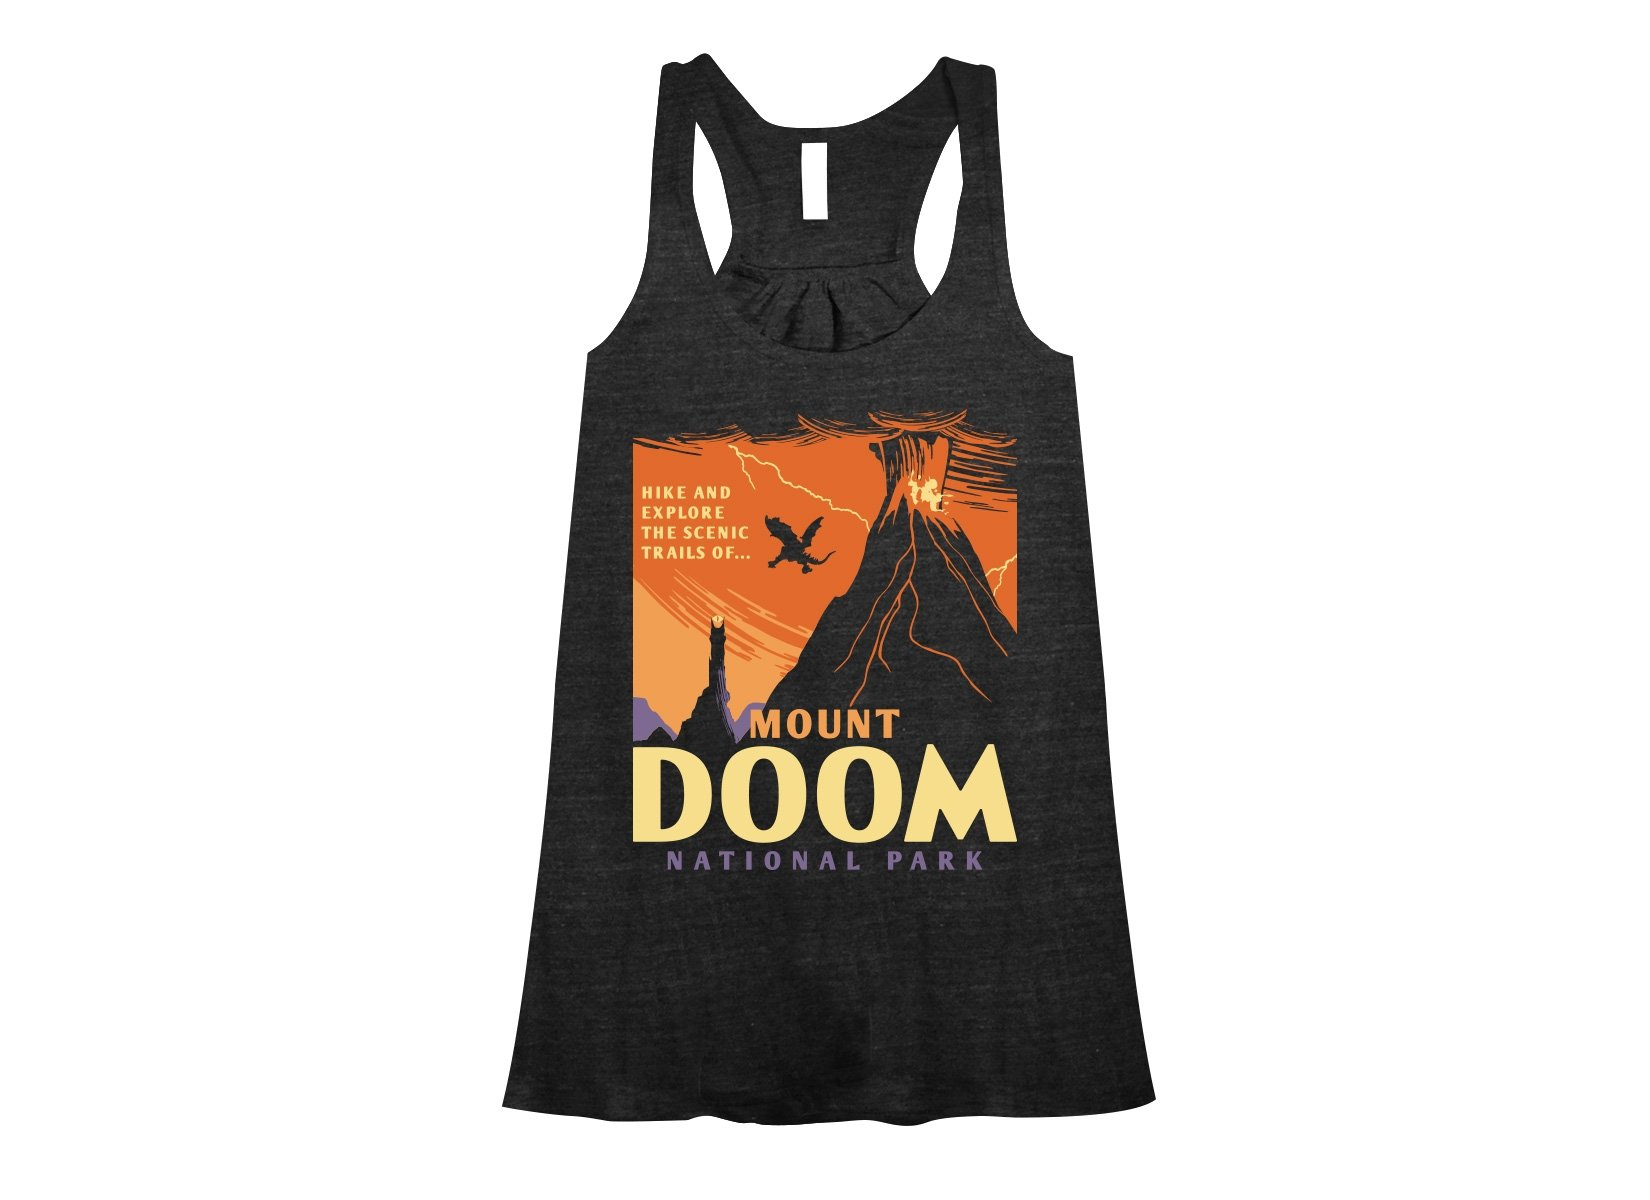 Mount Doom National Park on Womens Tanks T-Shirt